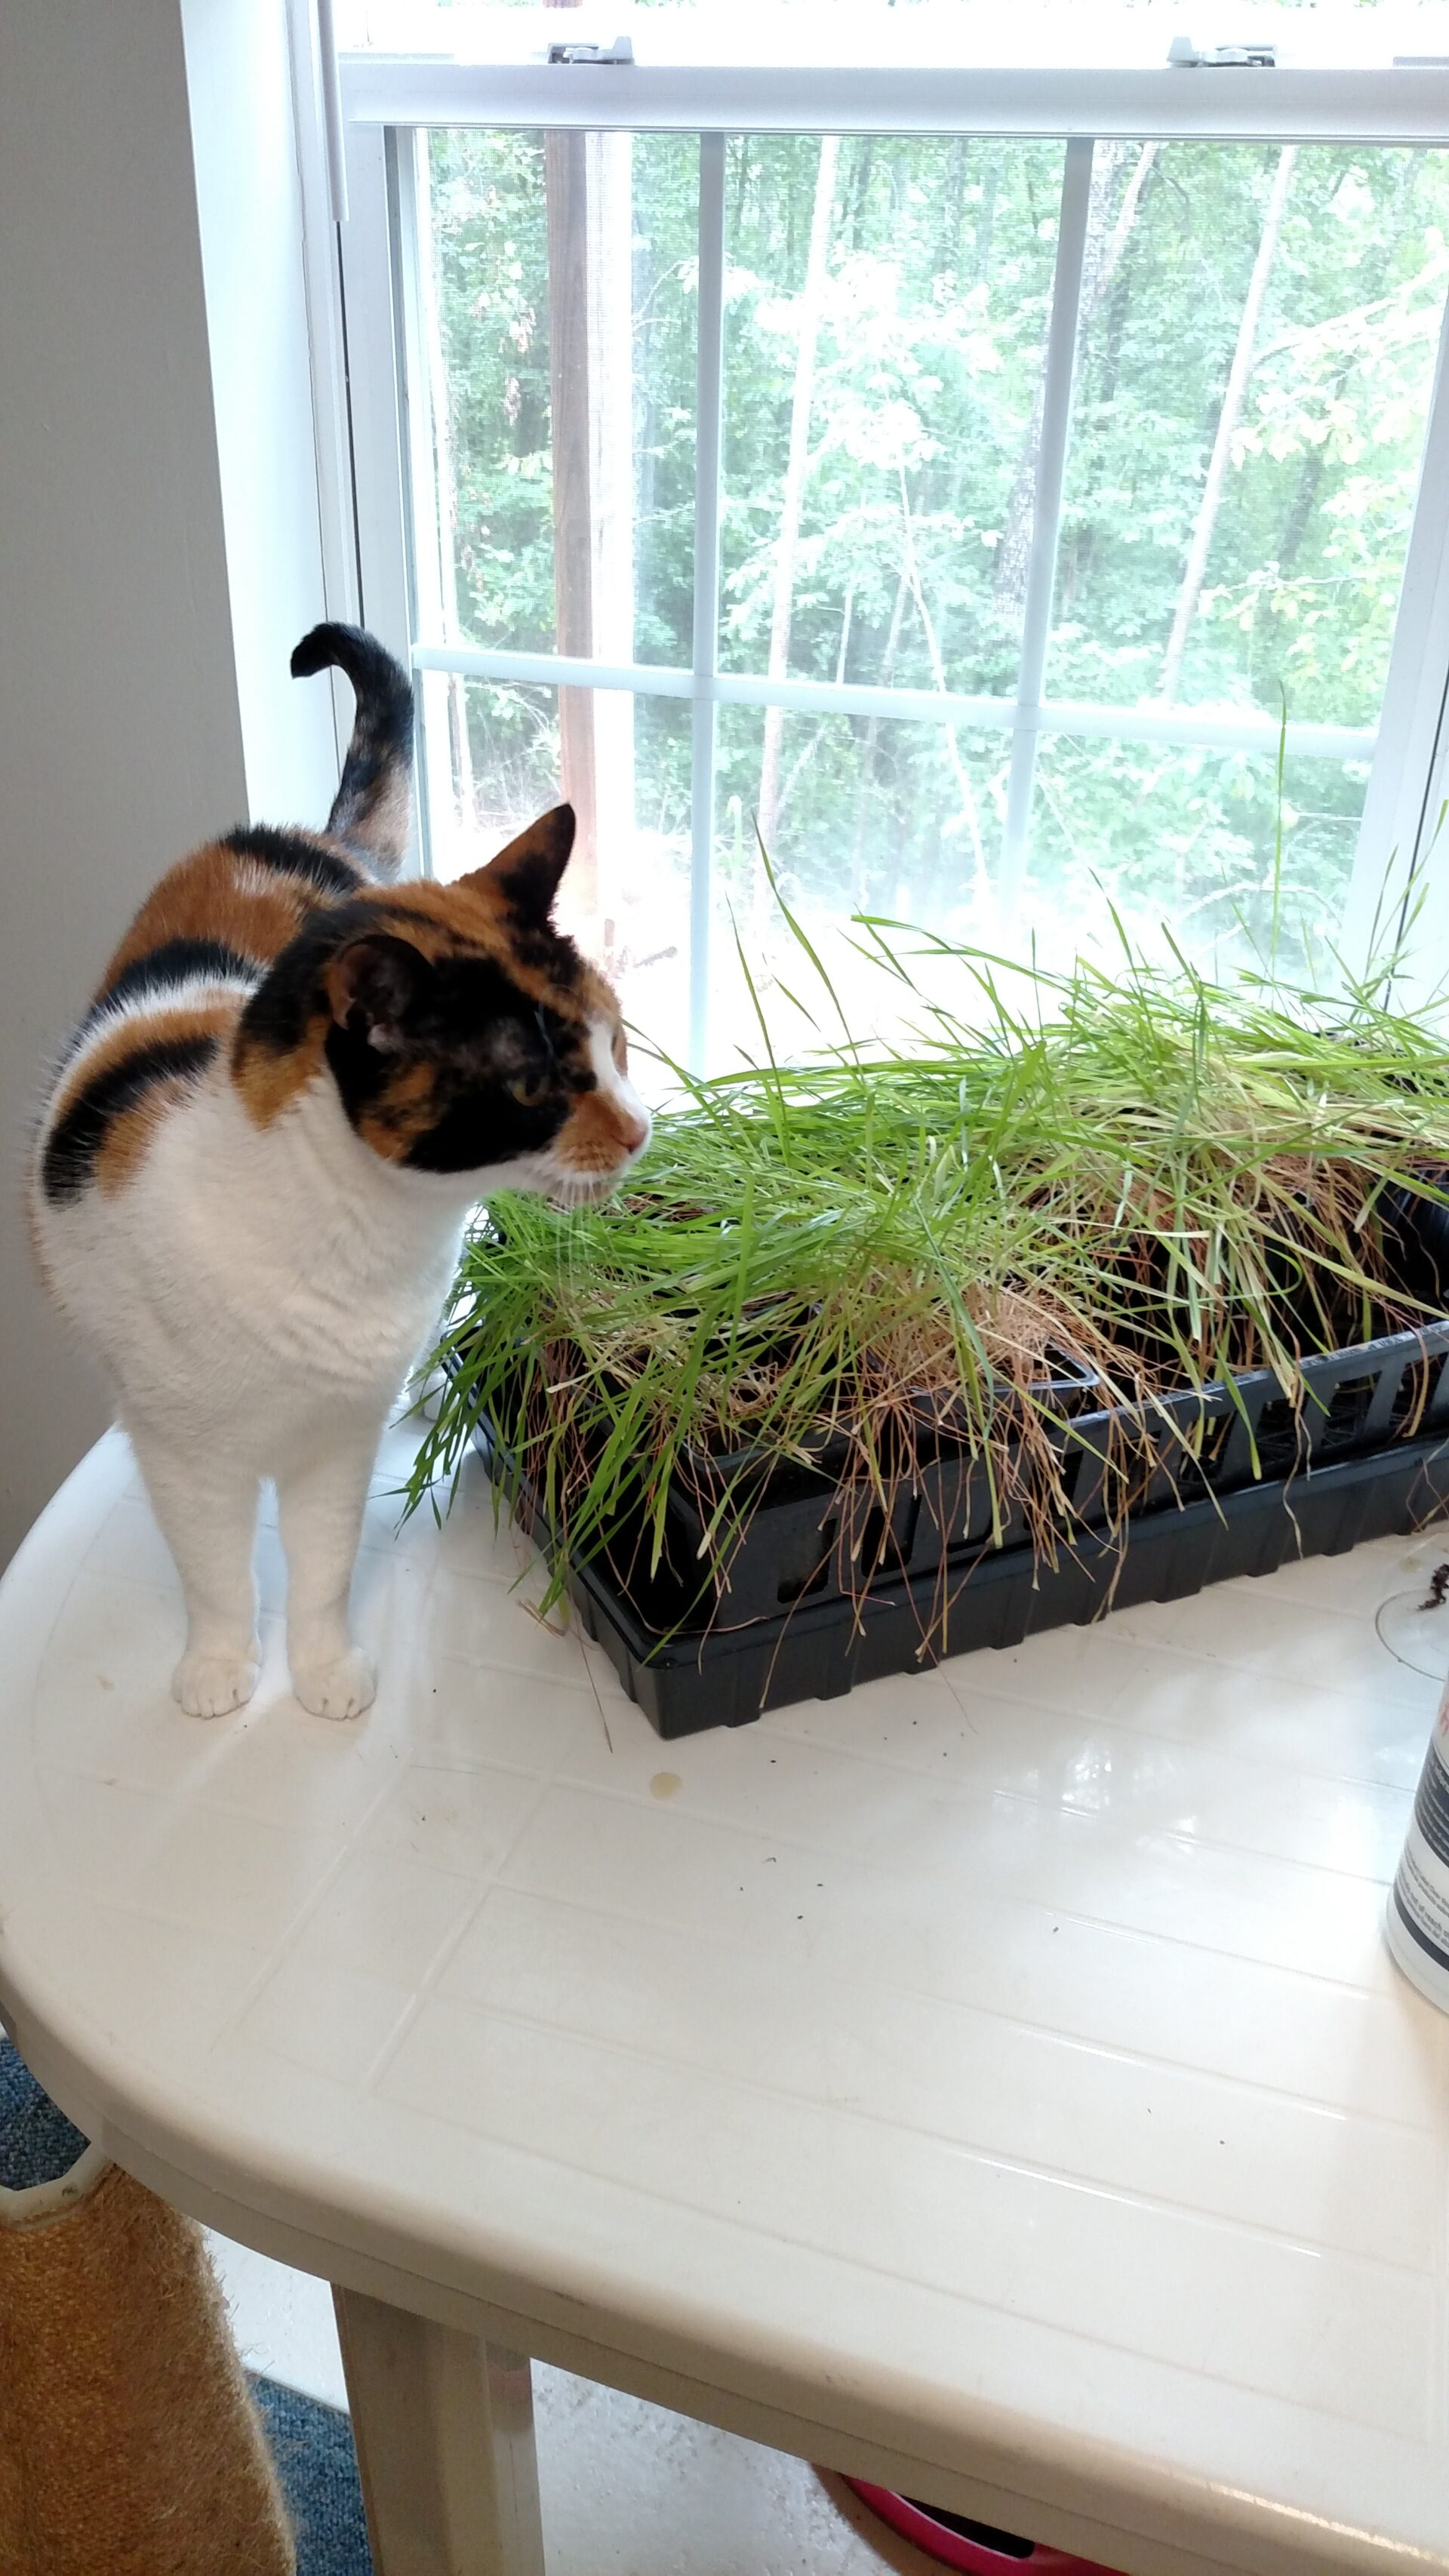 """If you want to introduce grass to a pet who is strictly or mostly indoor, growing your own """"cat grass"""" or """"wheatgrass"""" is very easy and has many health benefits. It can also deter them from chewing on any of your beloved house plants!"""